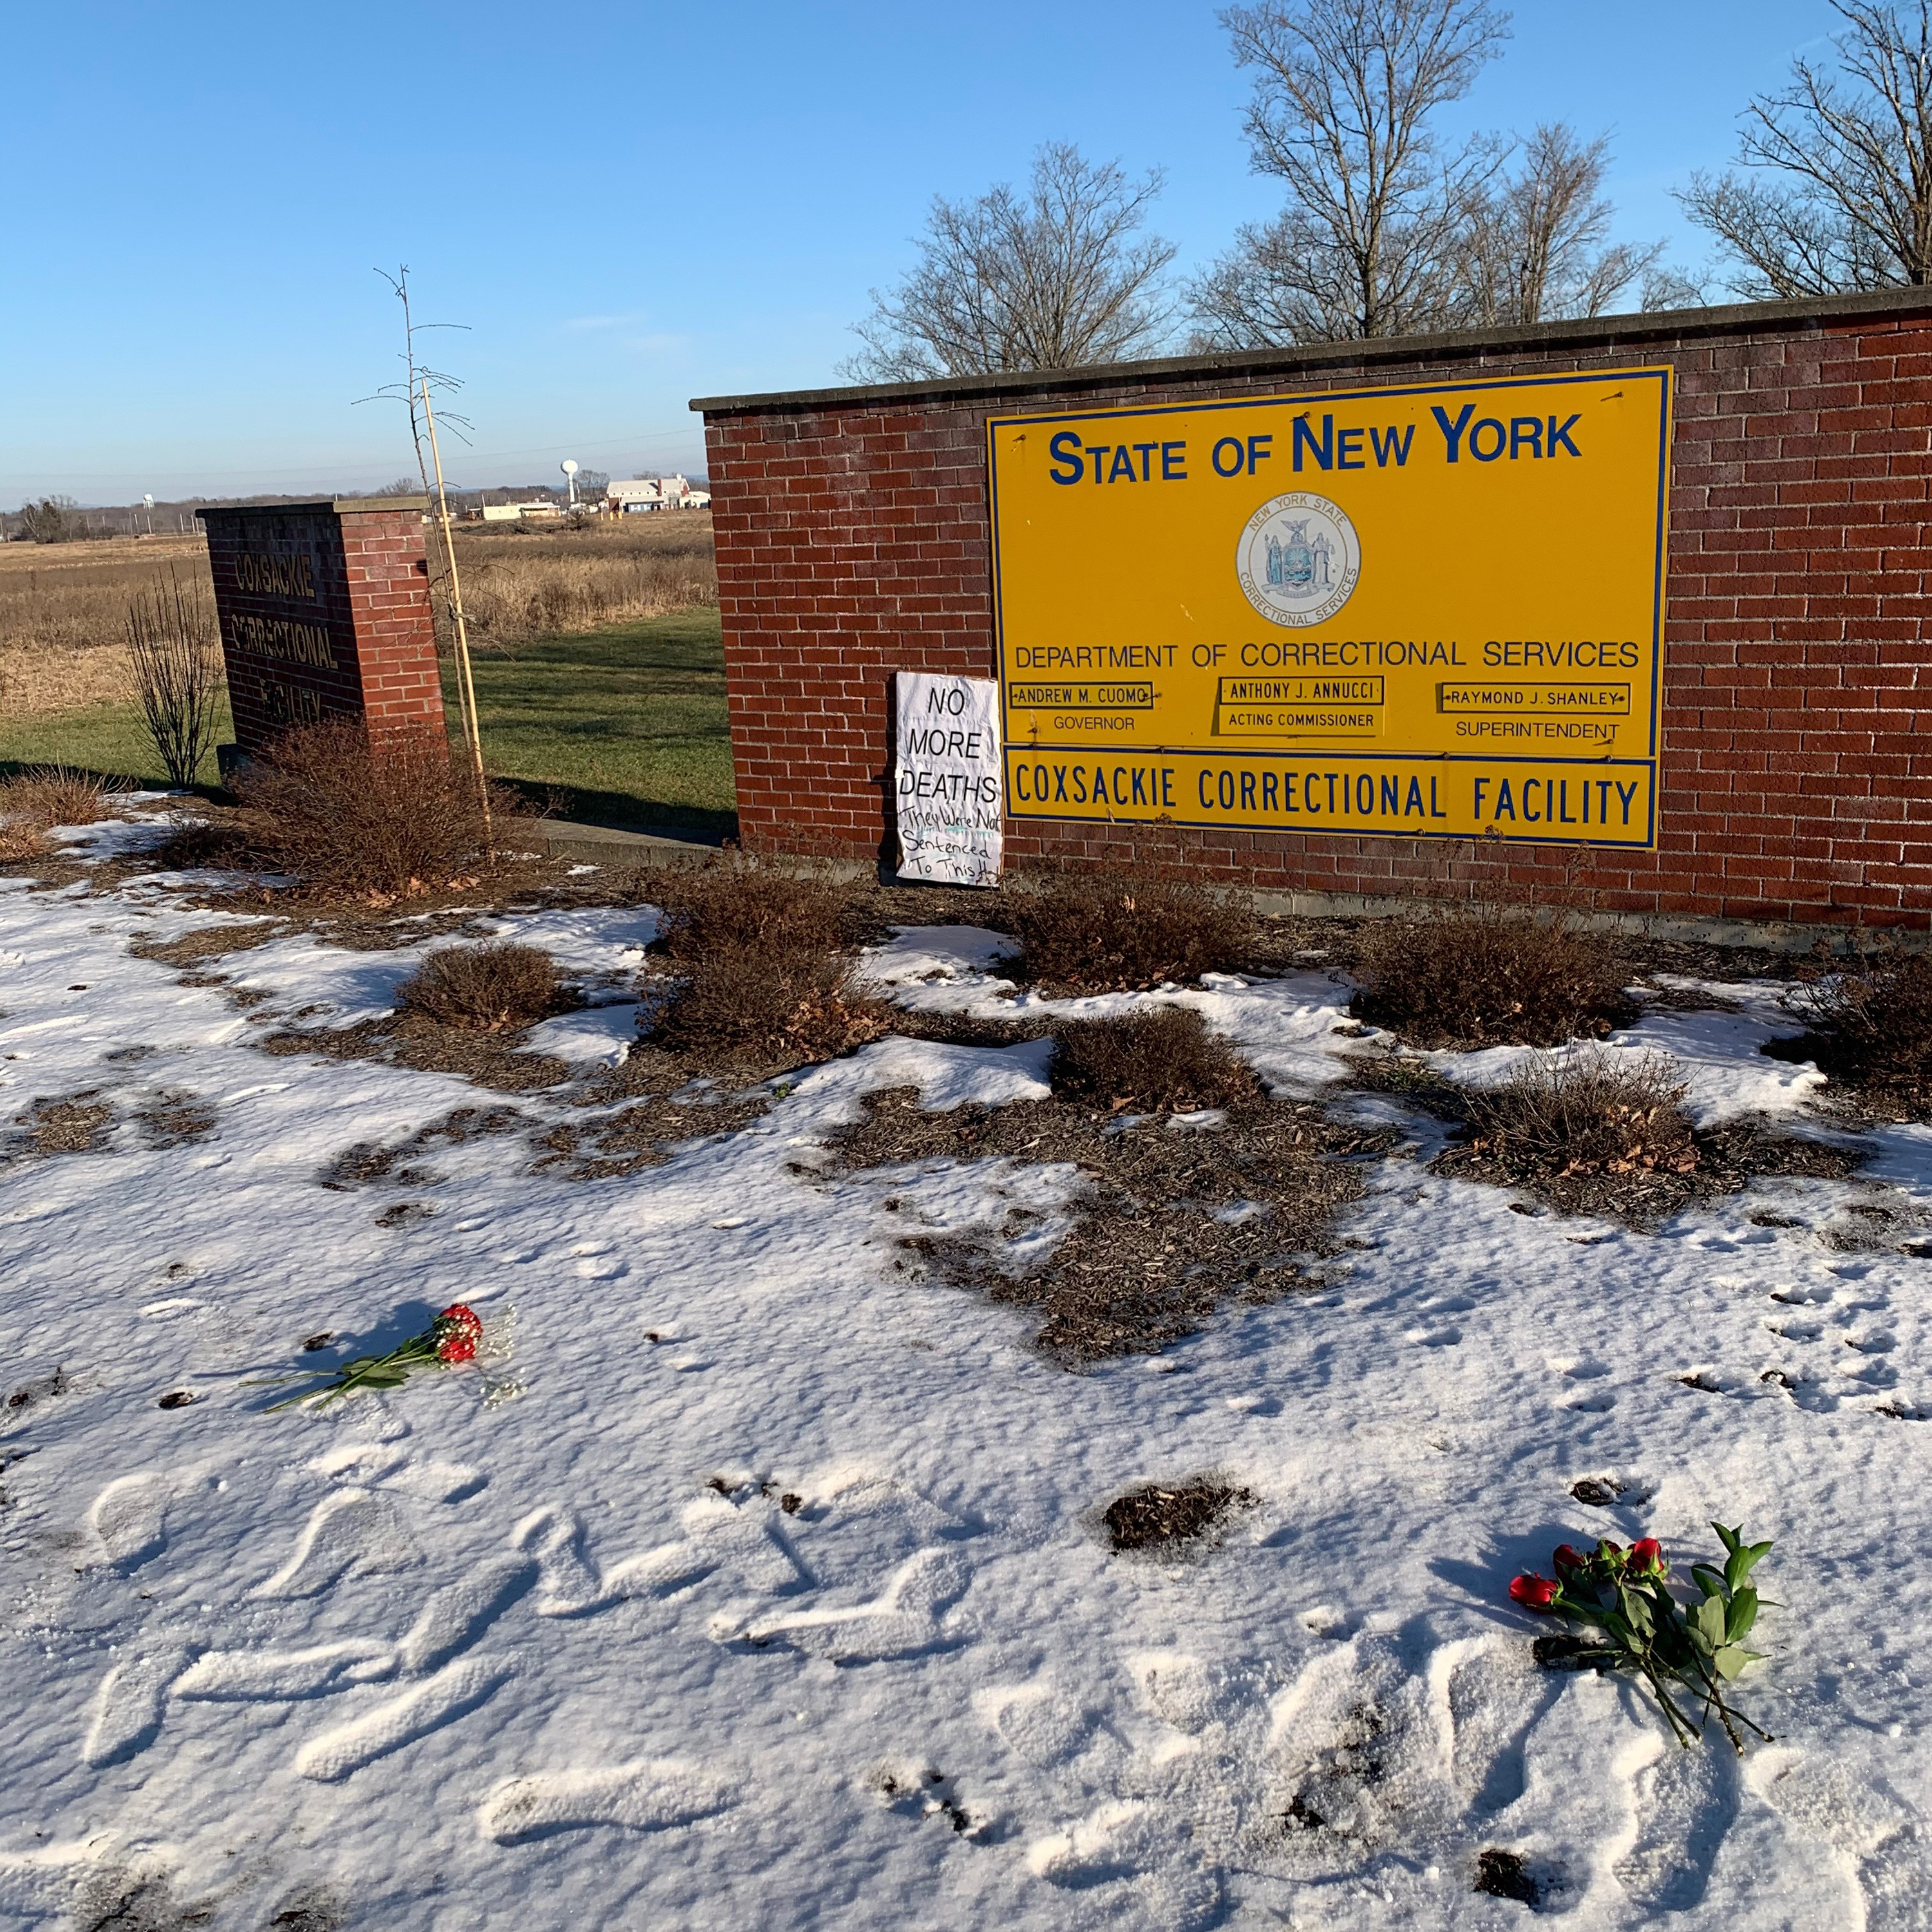 Prison reform advocates laid flowers for the dead outside Coxsackie Correctional Facility, Jan. 10, 2020.